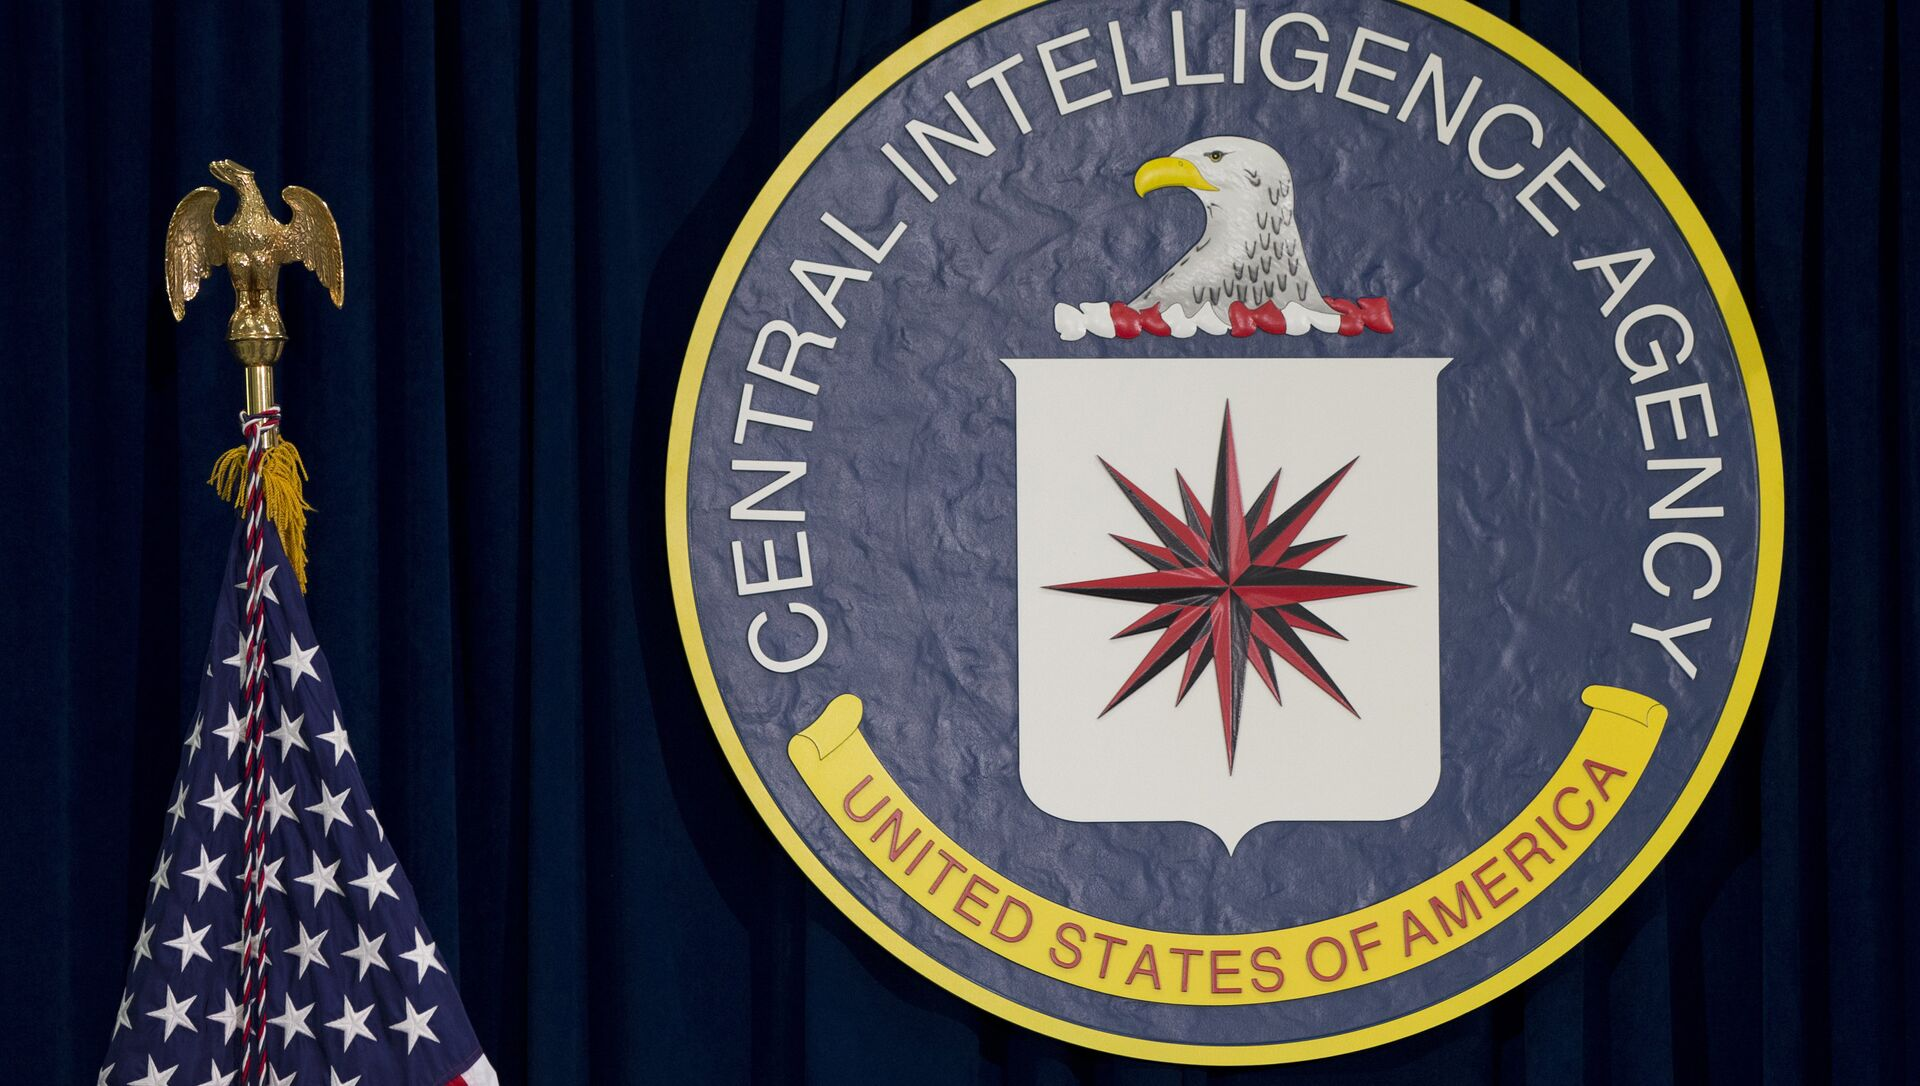 This 13 April 2016 file photo shows the seal of the Central Intelligence Agency at CIA headquarters in Langley, Virginia.  - Sputnik International, 1920, 13.08.2021